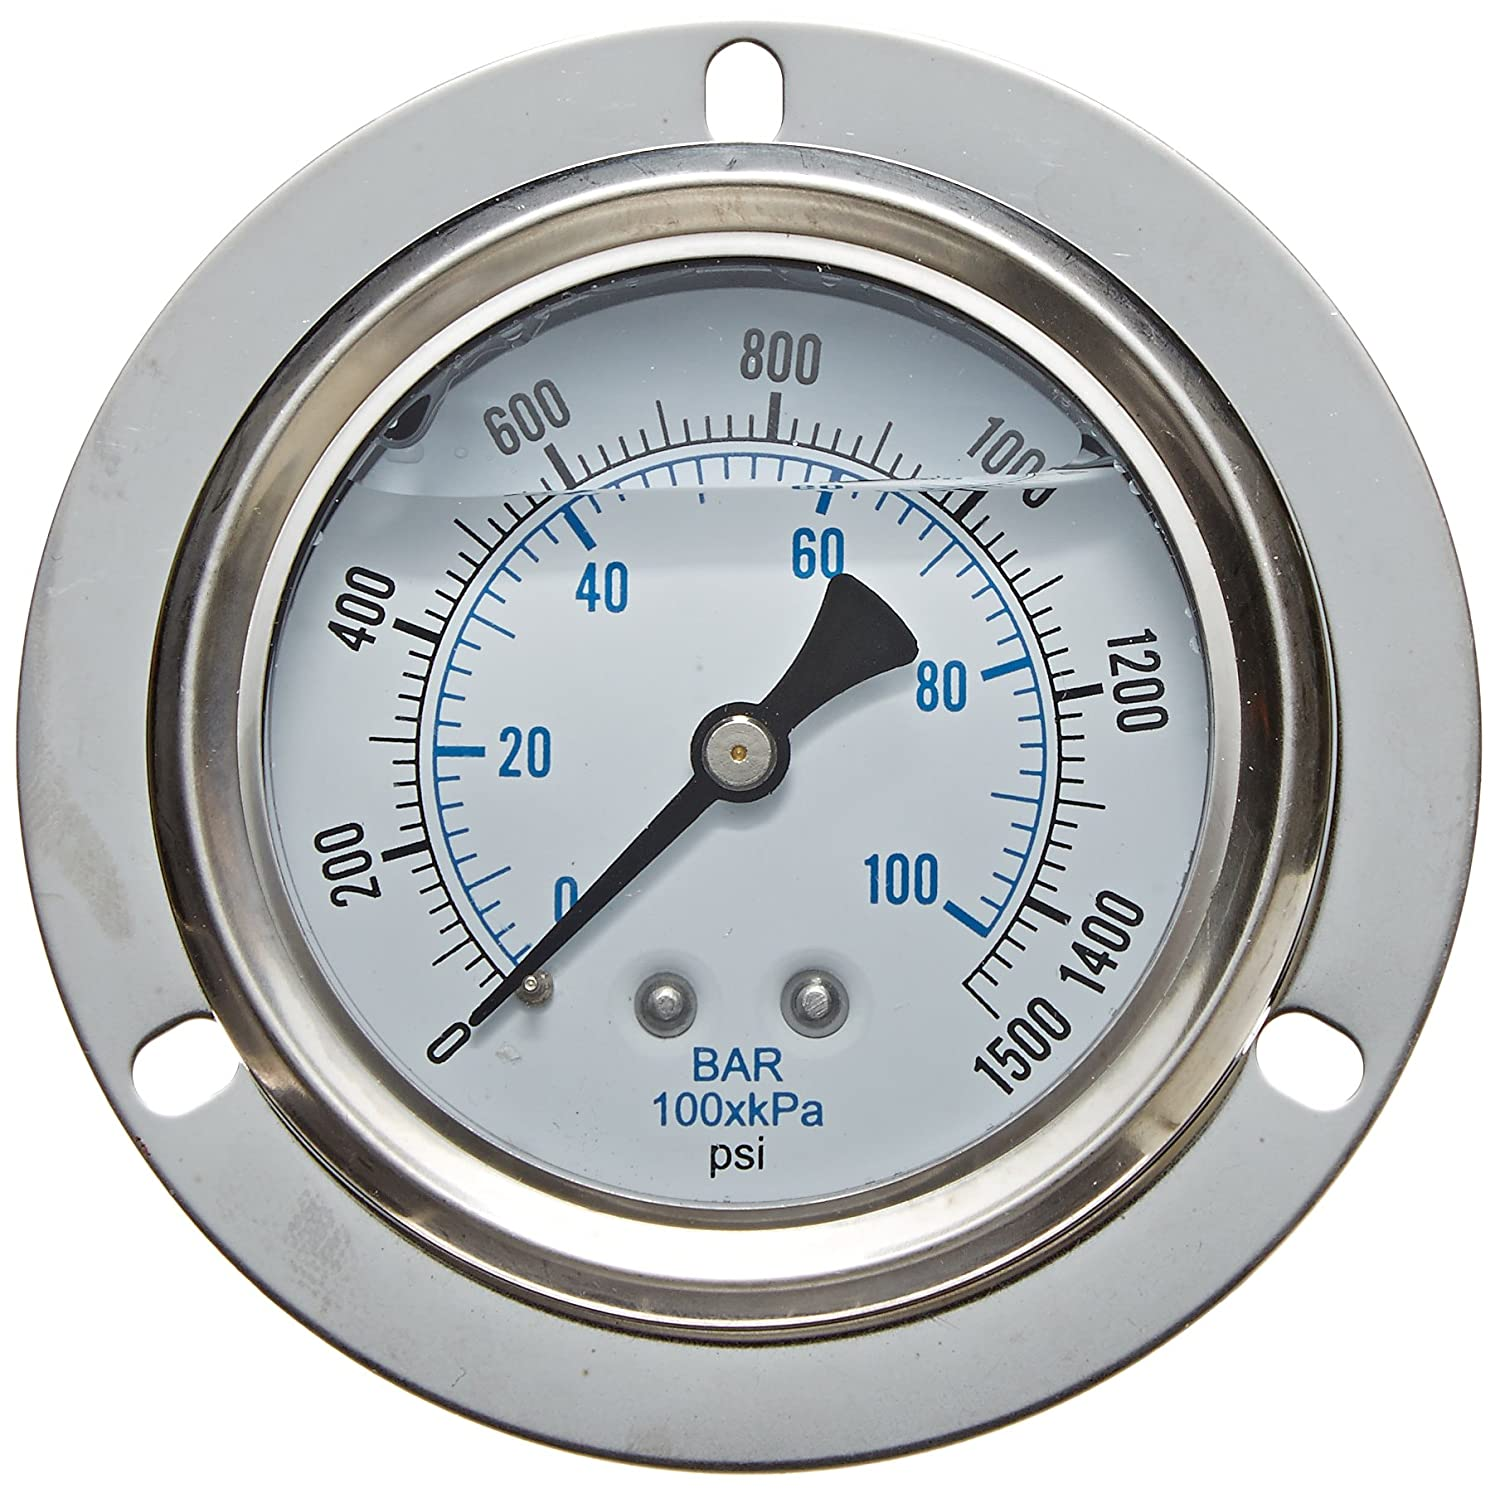 PIC Gauge PRO 204L 254R Glycerin Filled Industrial Front Flanged Panel Mount Pressure Gauge with Stainless Steel Case Brass Internals Plastic Lens 2 1 2 Dial Size 1 4 Male NPT 0 5000 psi